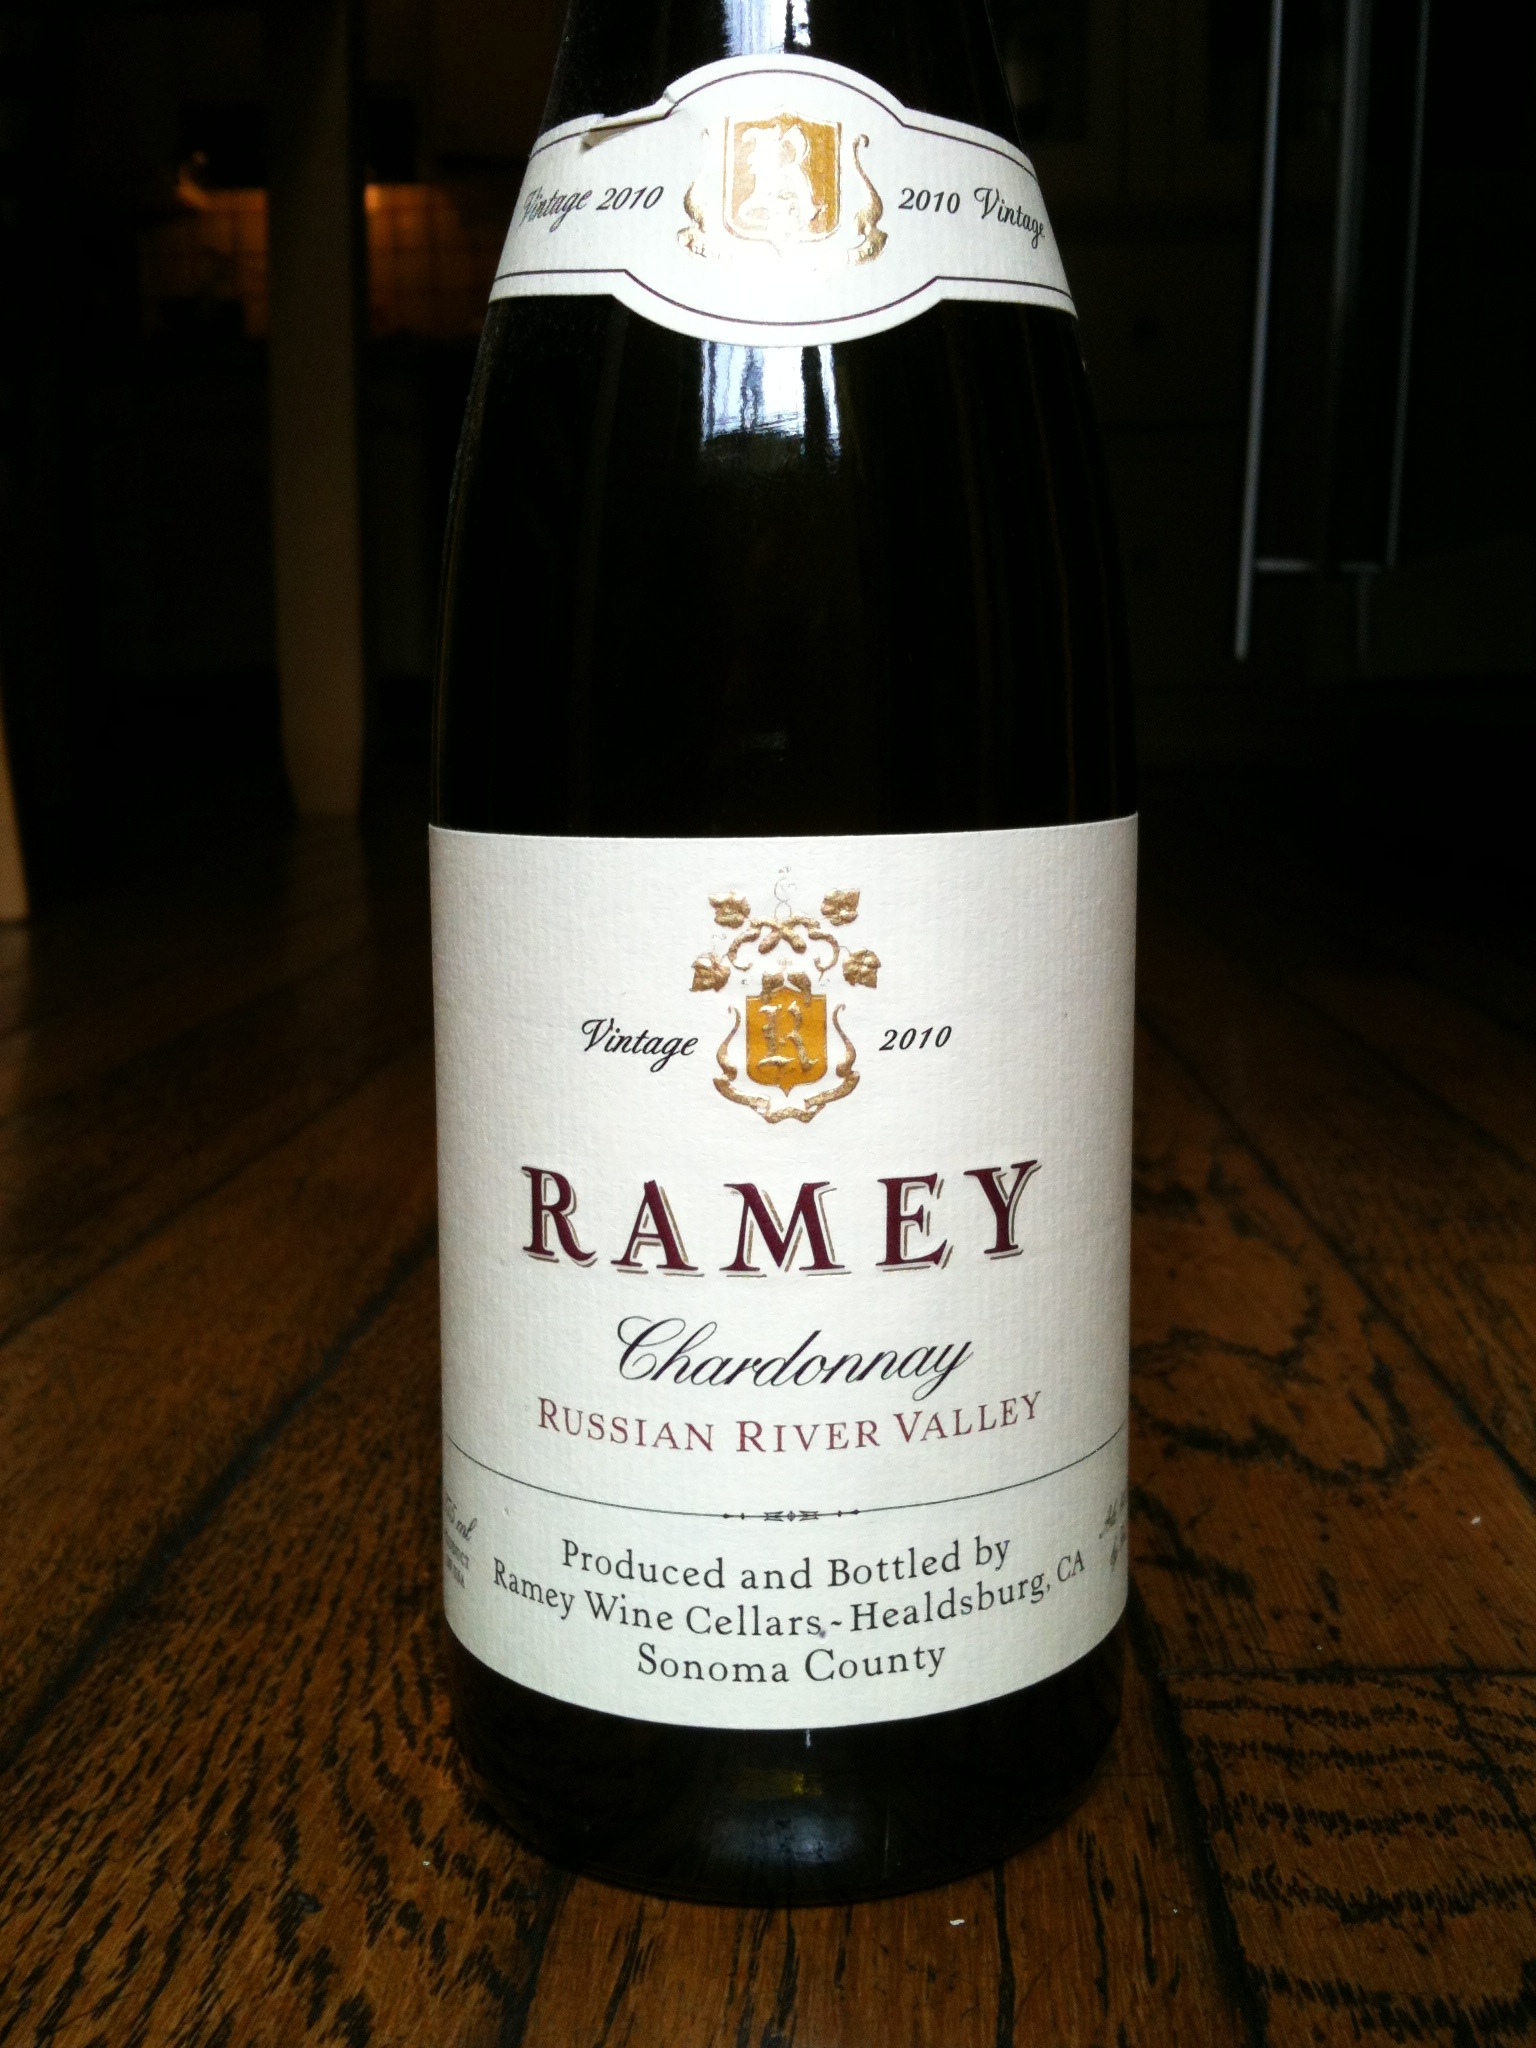 Ramey Chardonnay Russian River Valley 2010 - Wine Review